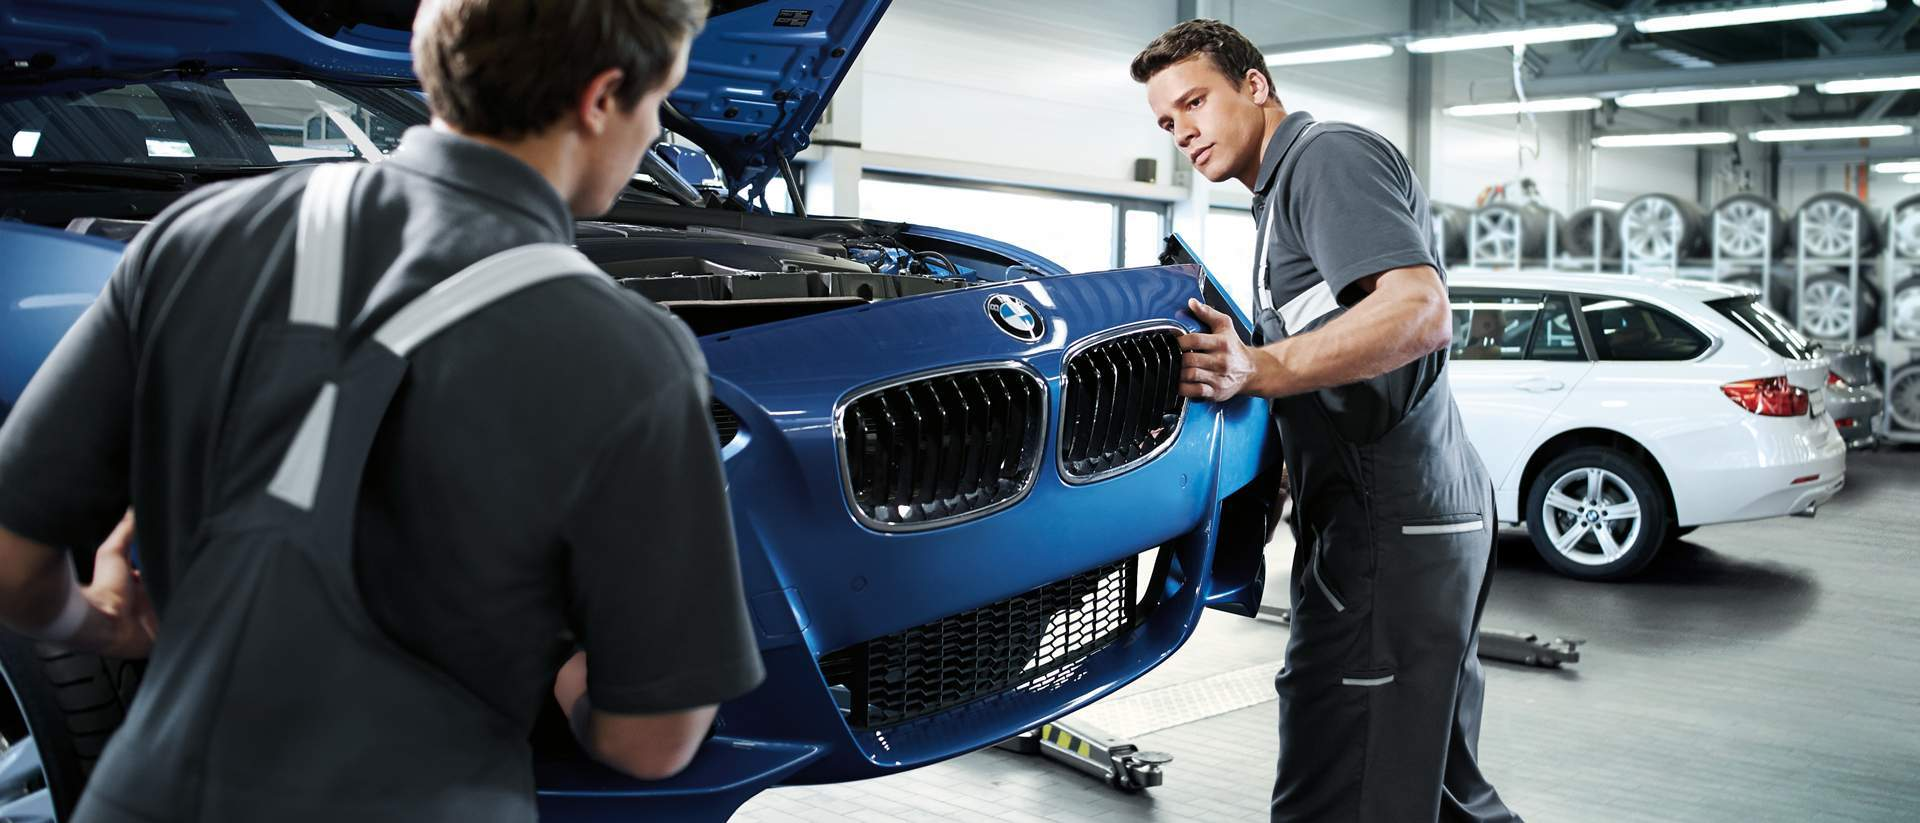 South motors bmw collision center for German motors collision center